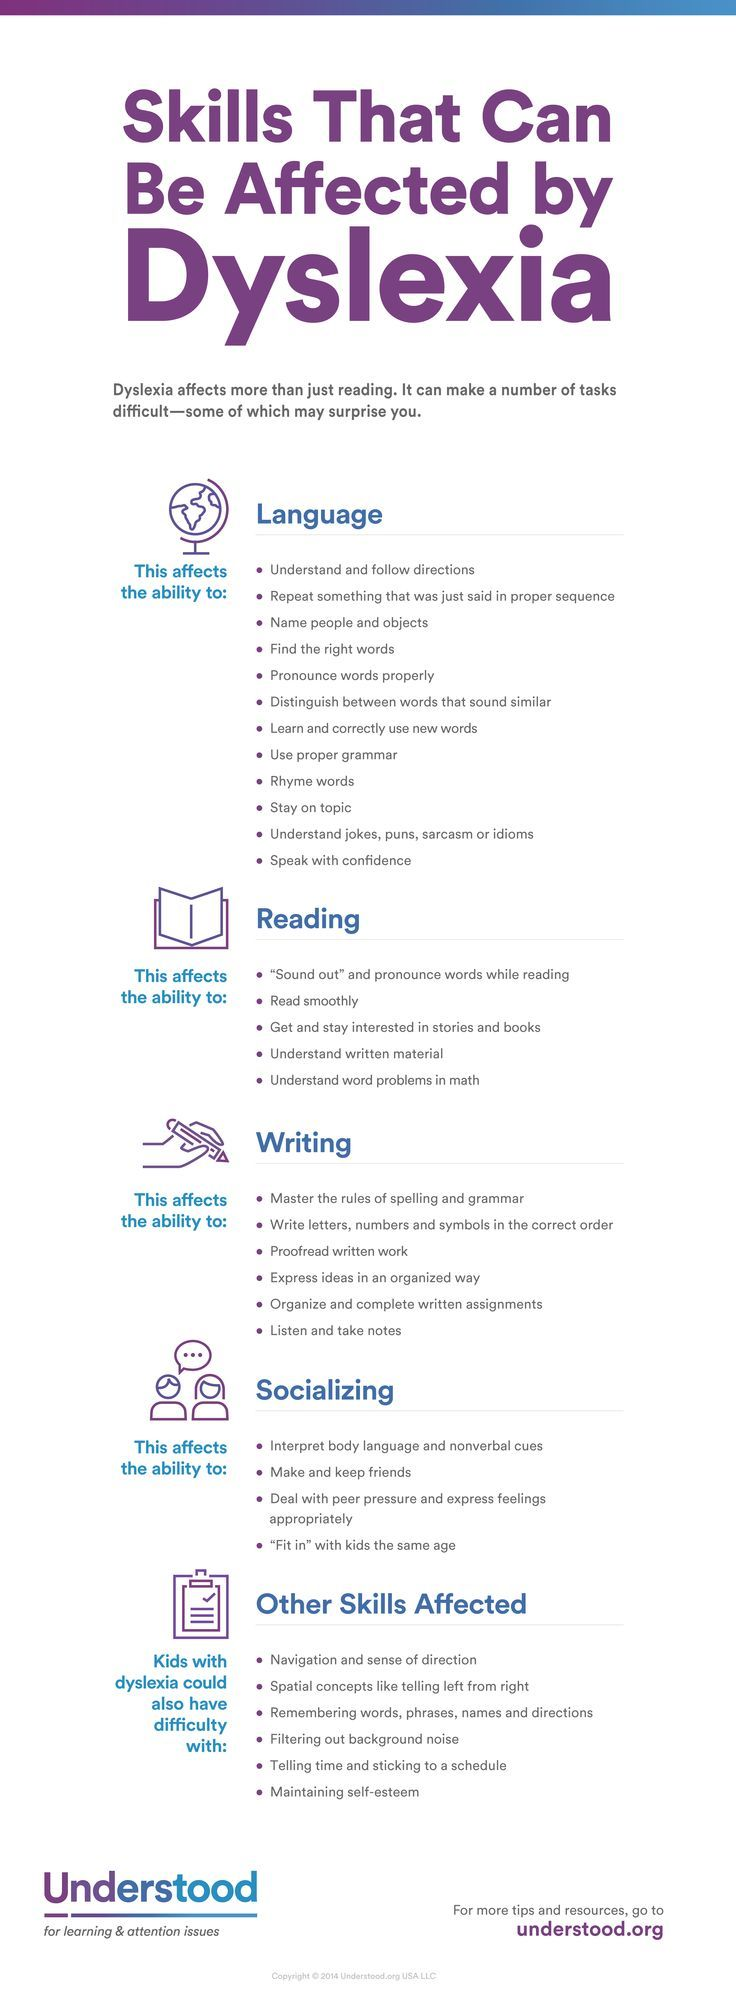 Skills Affected by Dyslexia   Dyslexia   Reading Issues - Understood